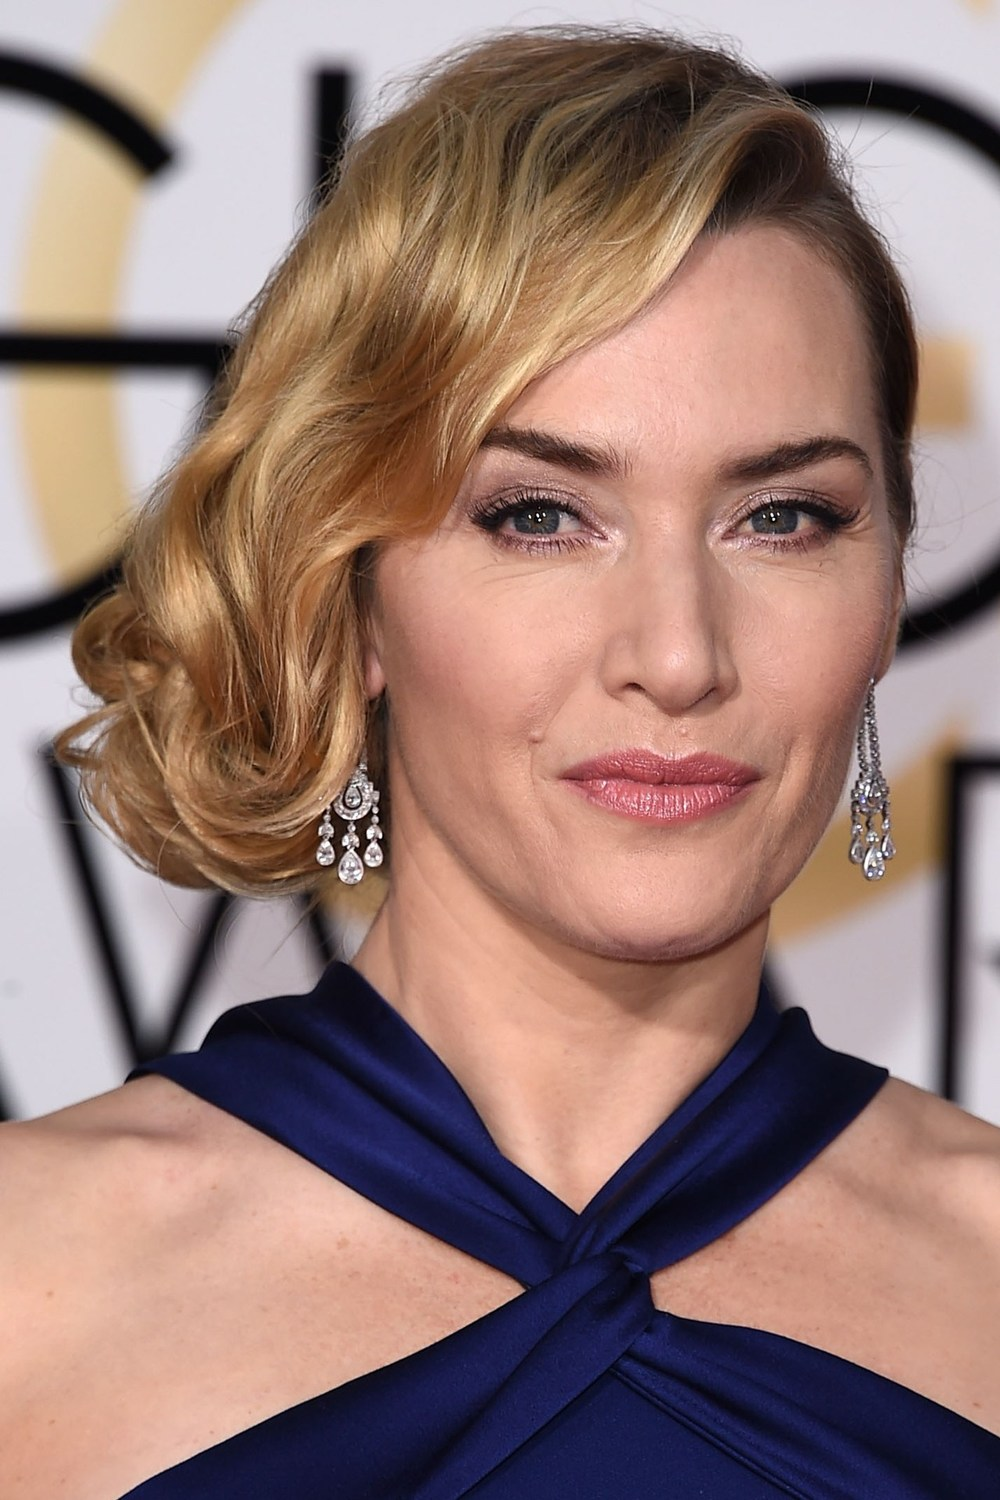 Kate Winslet, who won the best Supporting Actress award, was ANOTHER star who opted for a faux-bob hairstyle, offset by metallic eye make-up.